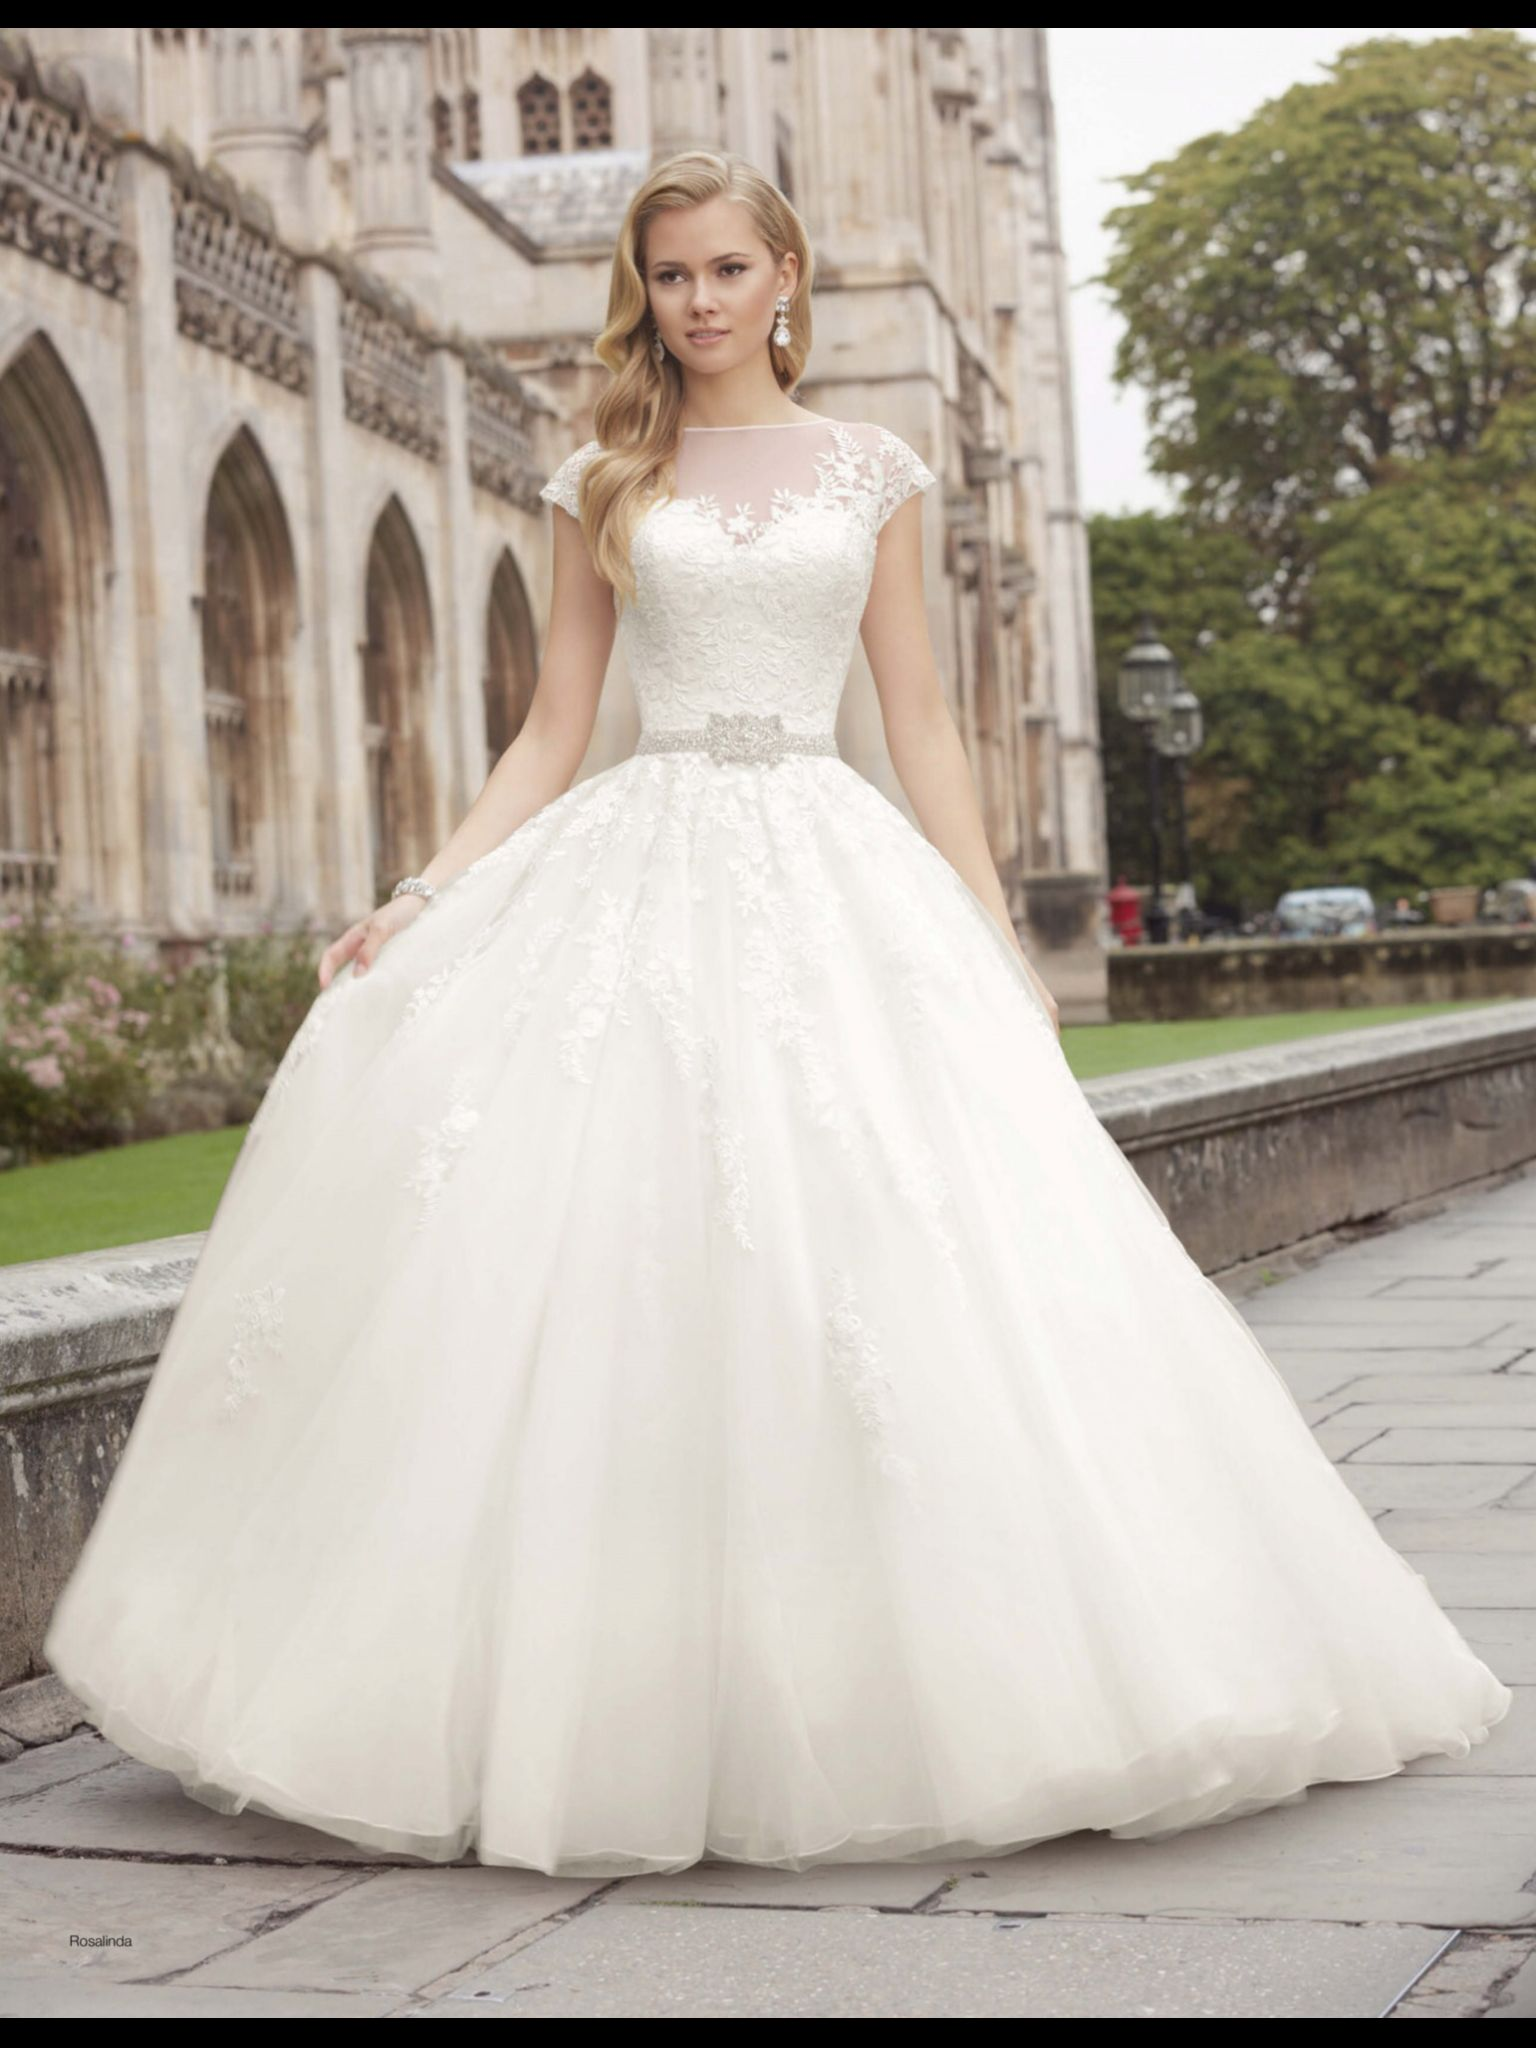 Princess dress | If you like fashion then this is for you ...